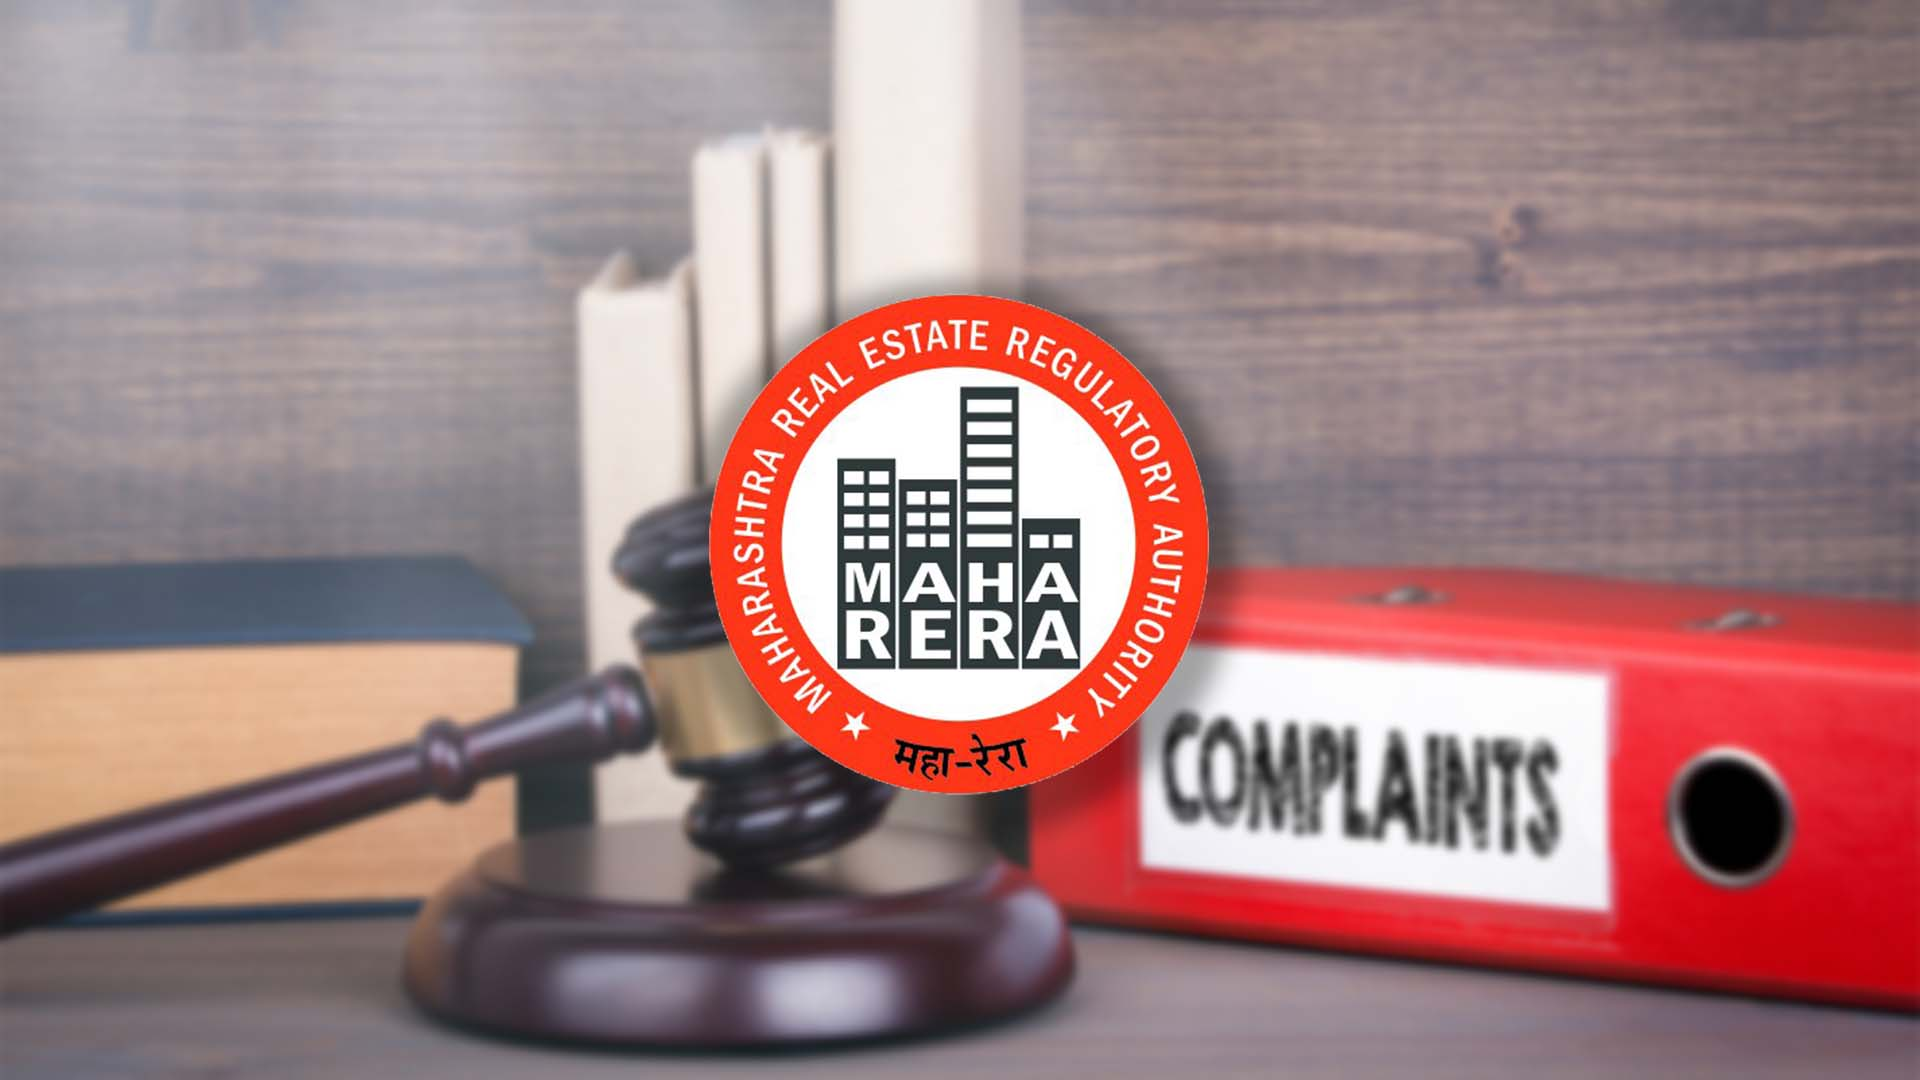 MahaRERA Forms Conciliation Teams To Solve Homebuyers' Complaints Against Builders